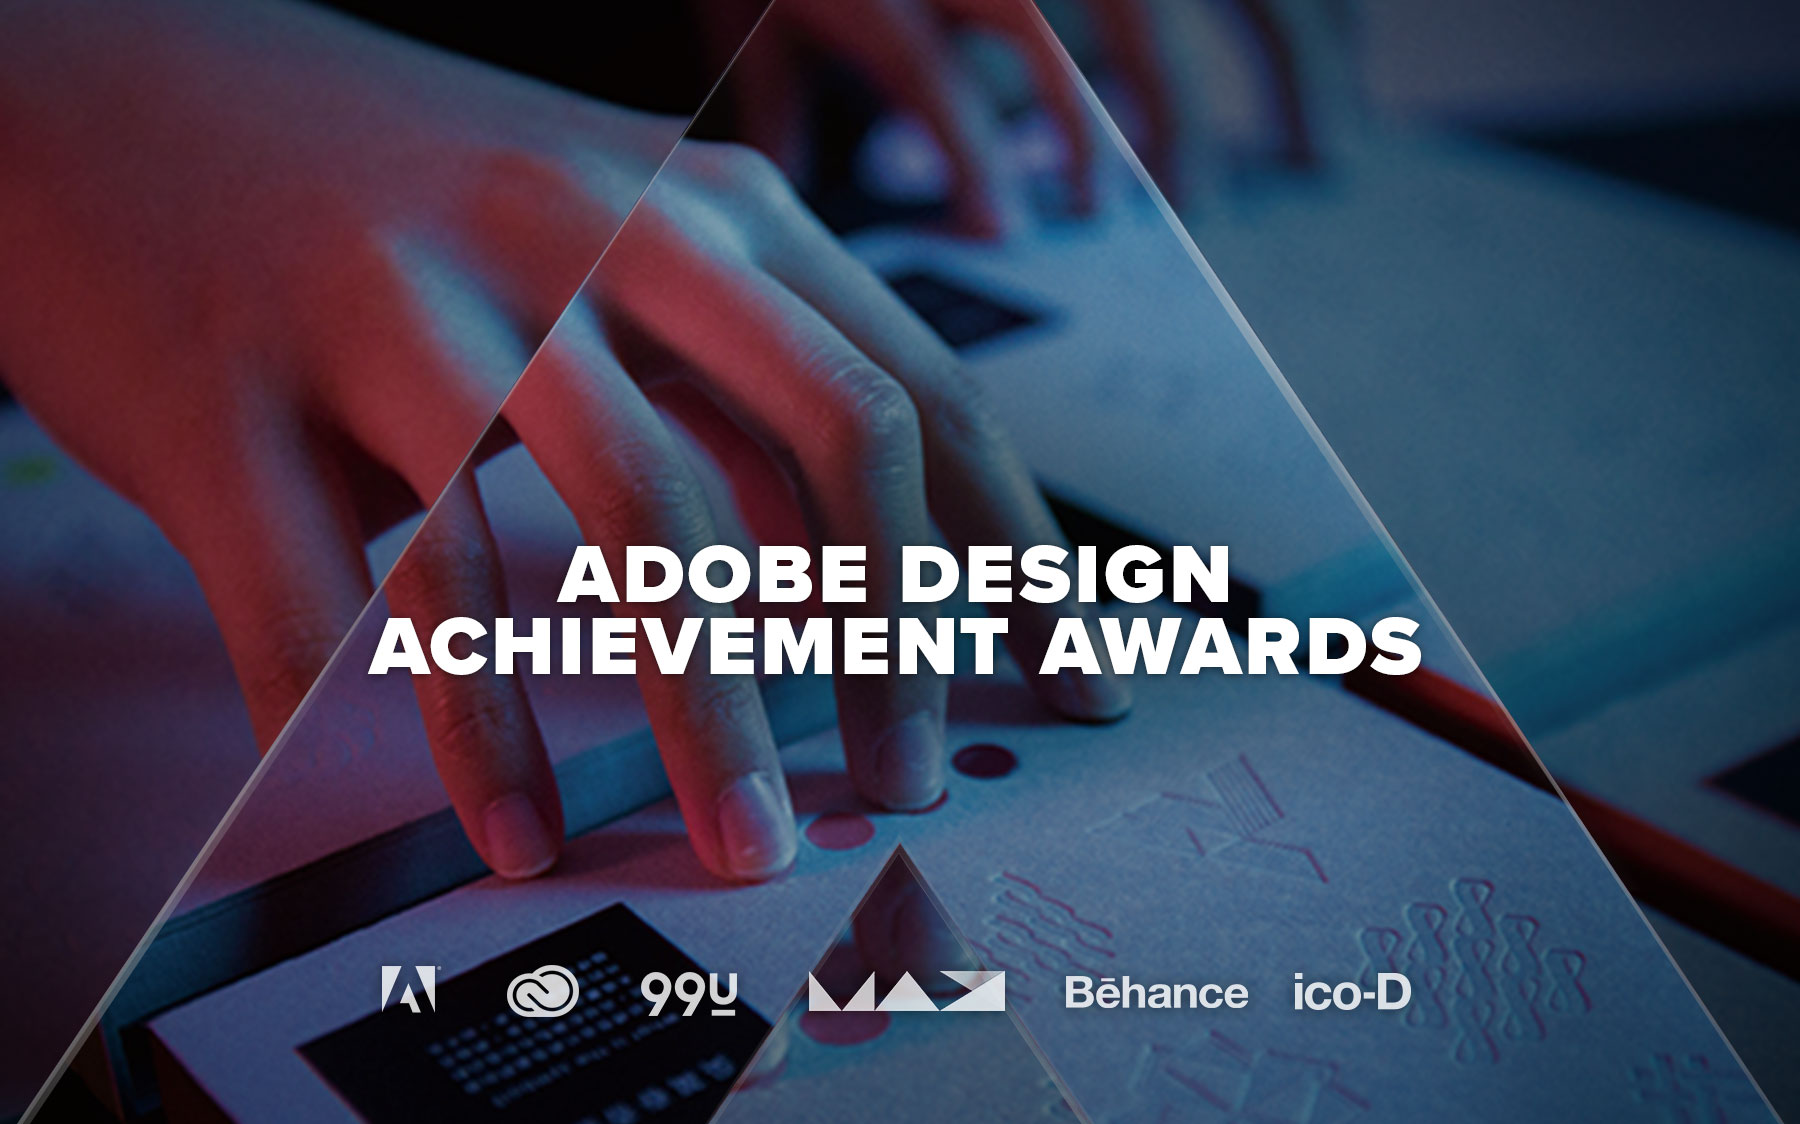 Adobe Design Achievement Award 2019 for Students and Emerging Creators